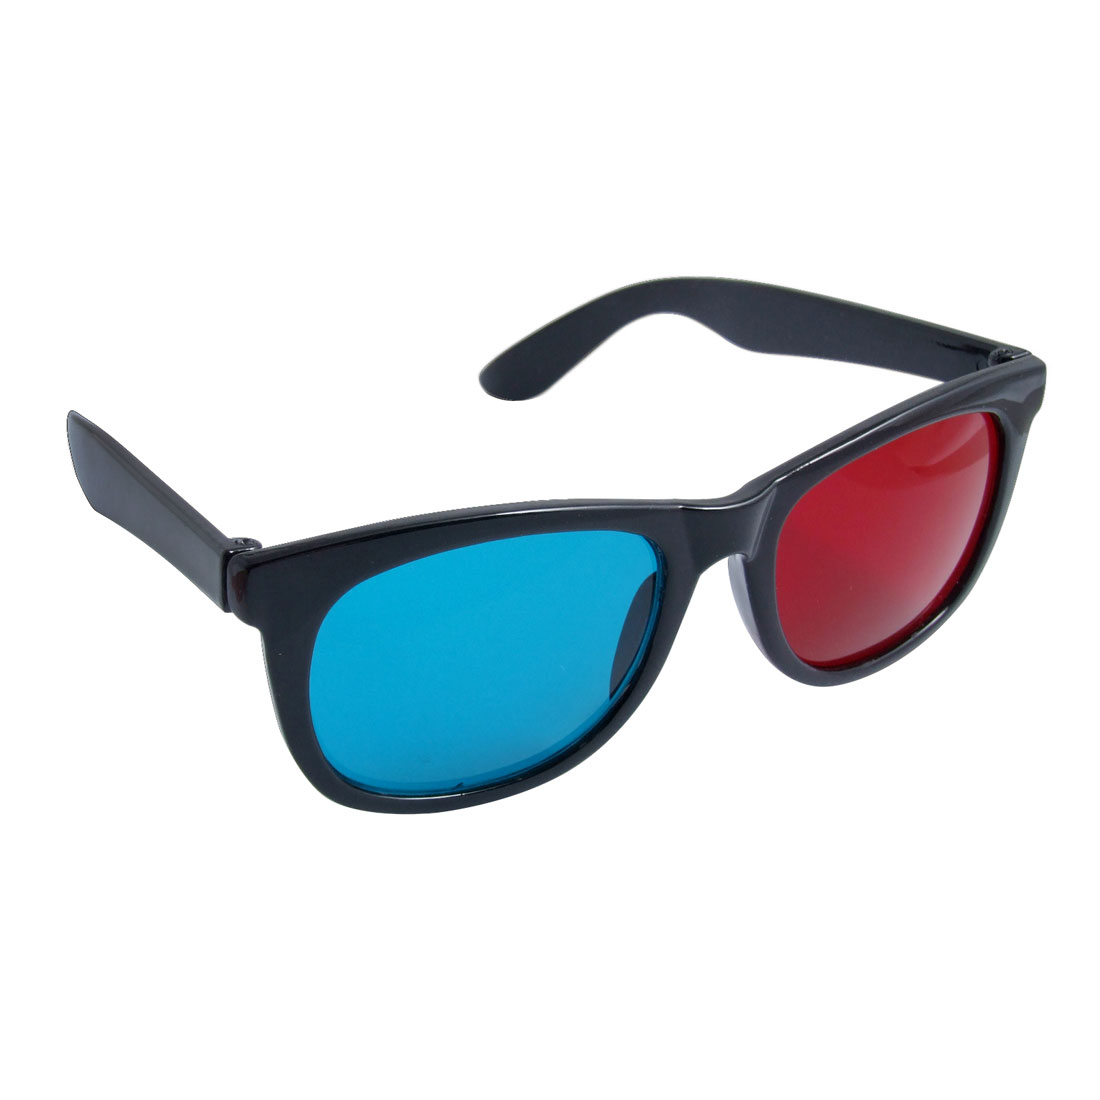 Red Cyan Plastic Frame Anaglyph 3D Moive Games Glasses